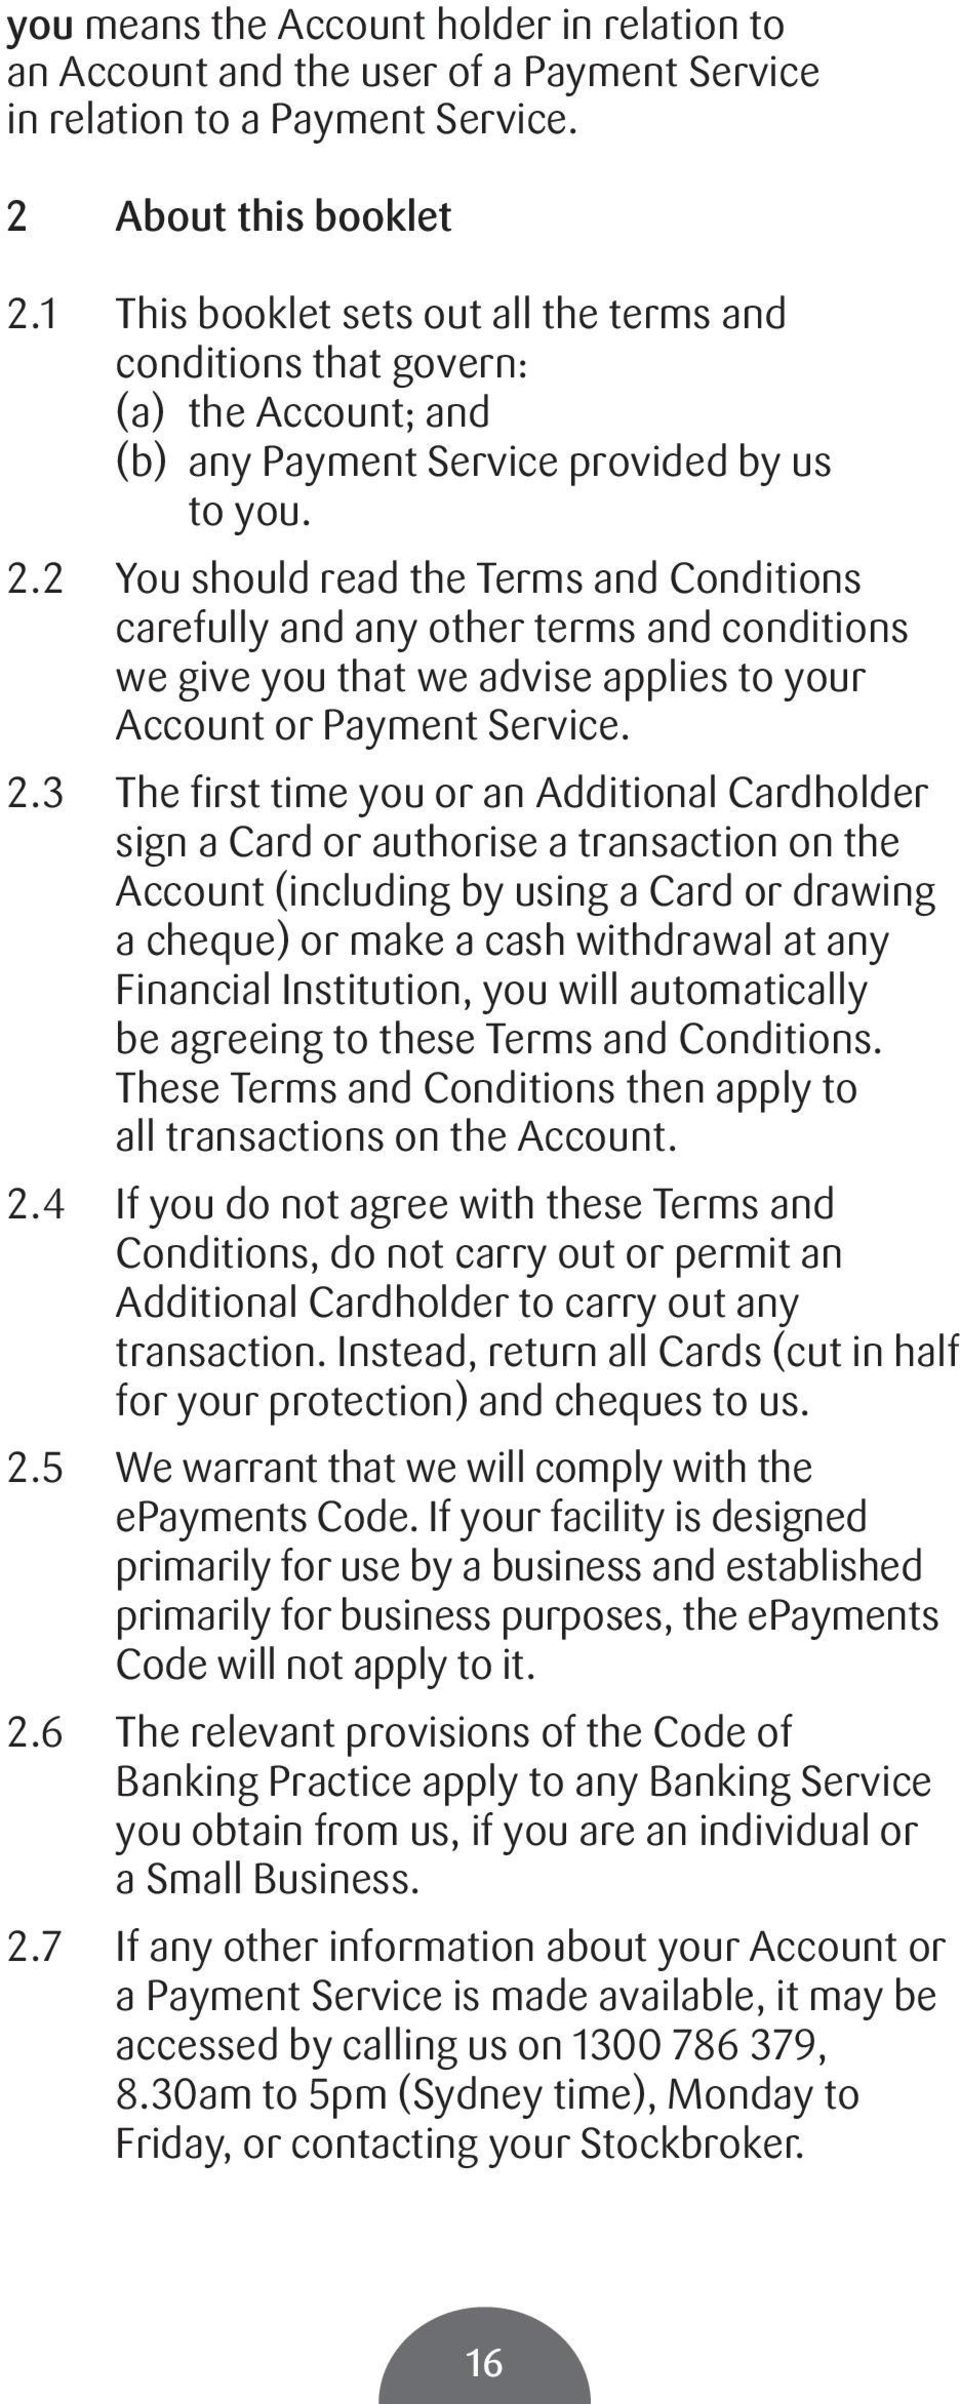 2 You should read the Terms and Conditions carefully and any other terms and conditions we give you that we advise applies to your Account or Payment Service. 2.